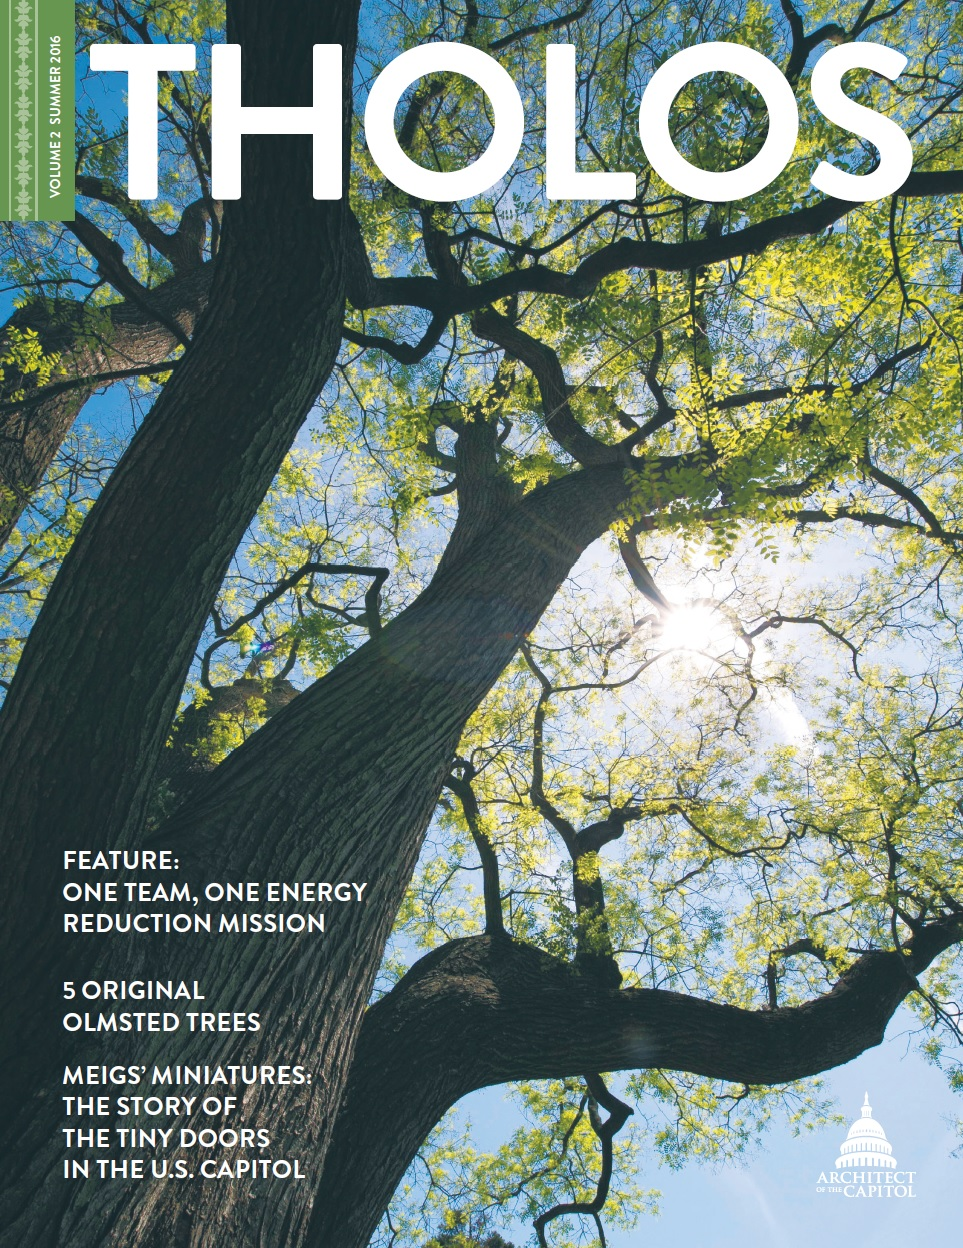 Tholos Magazine cover, Volume 2 Summer 2016.